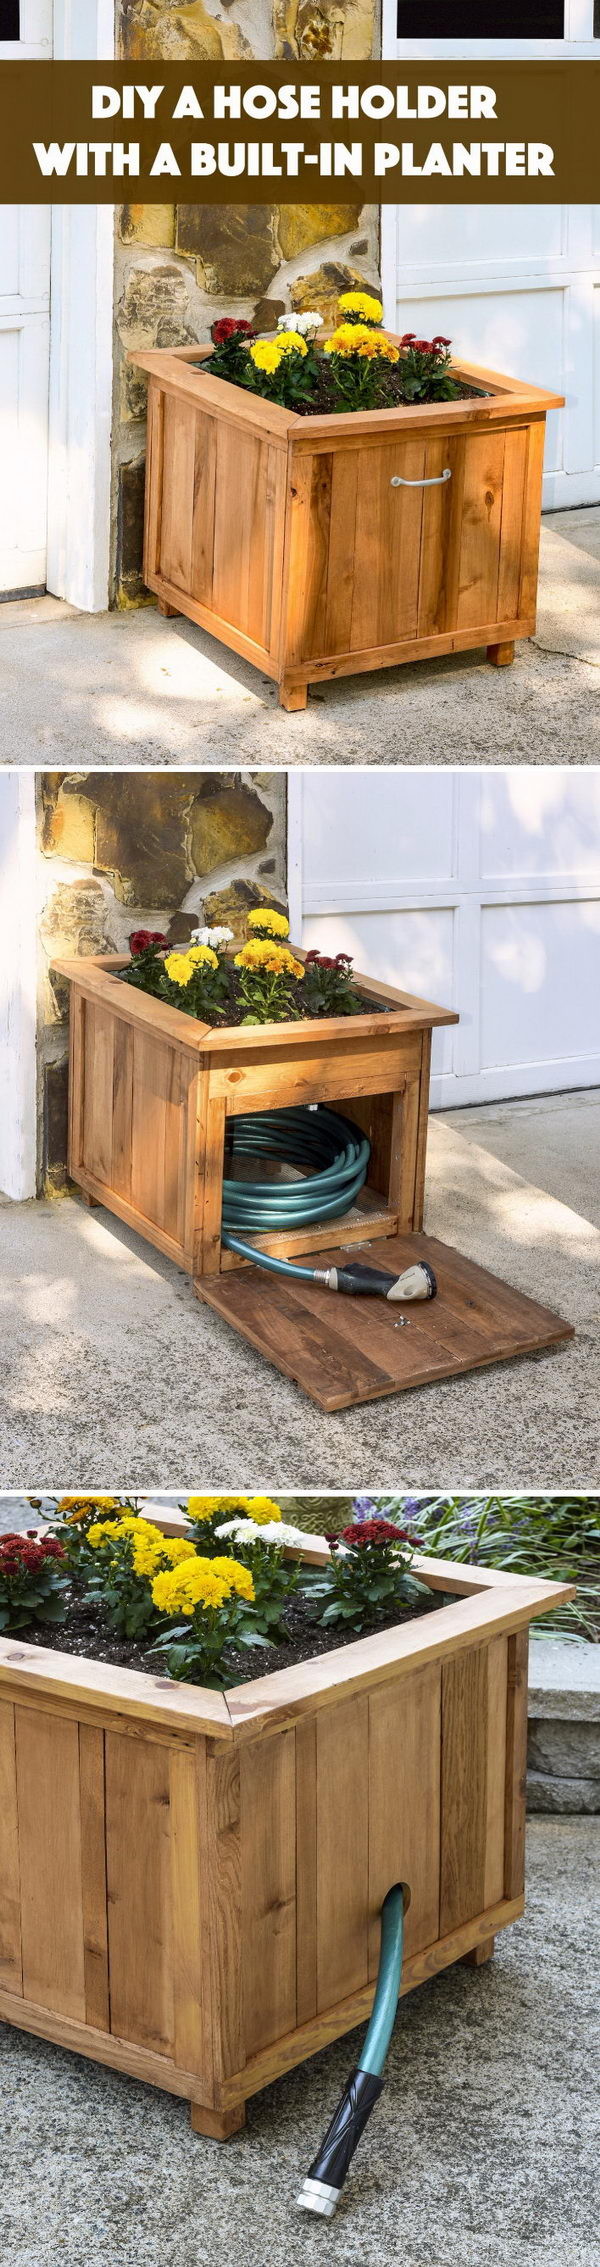 DIY Pallet Wood Hose Holder with Planter.